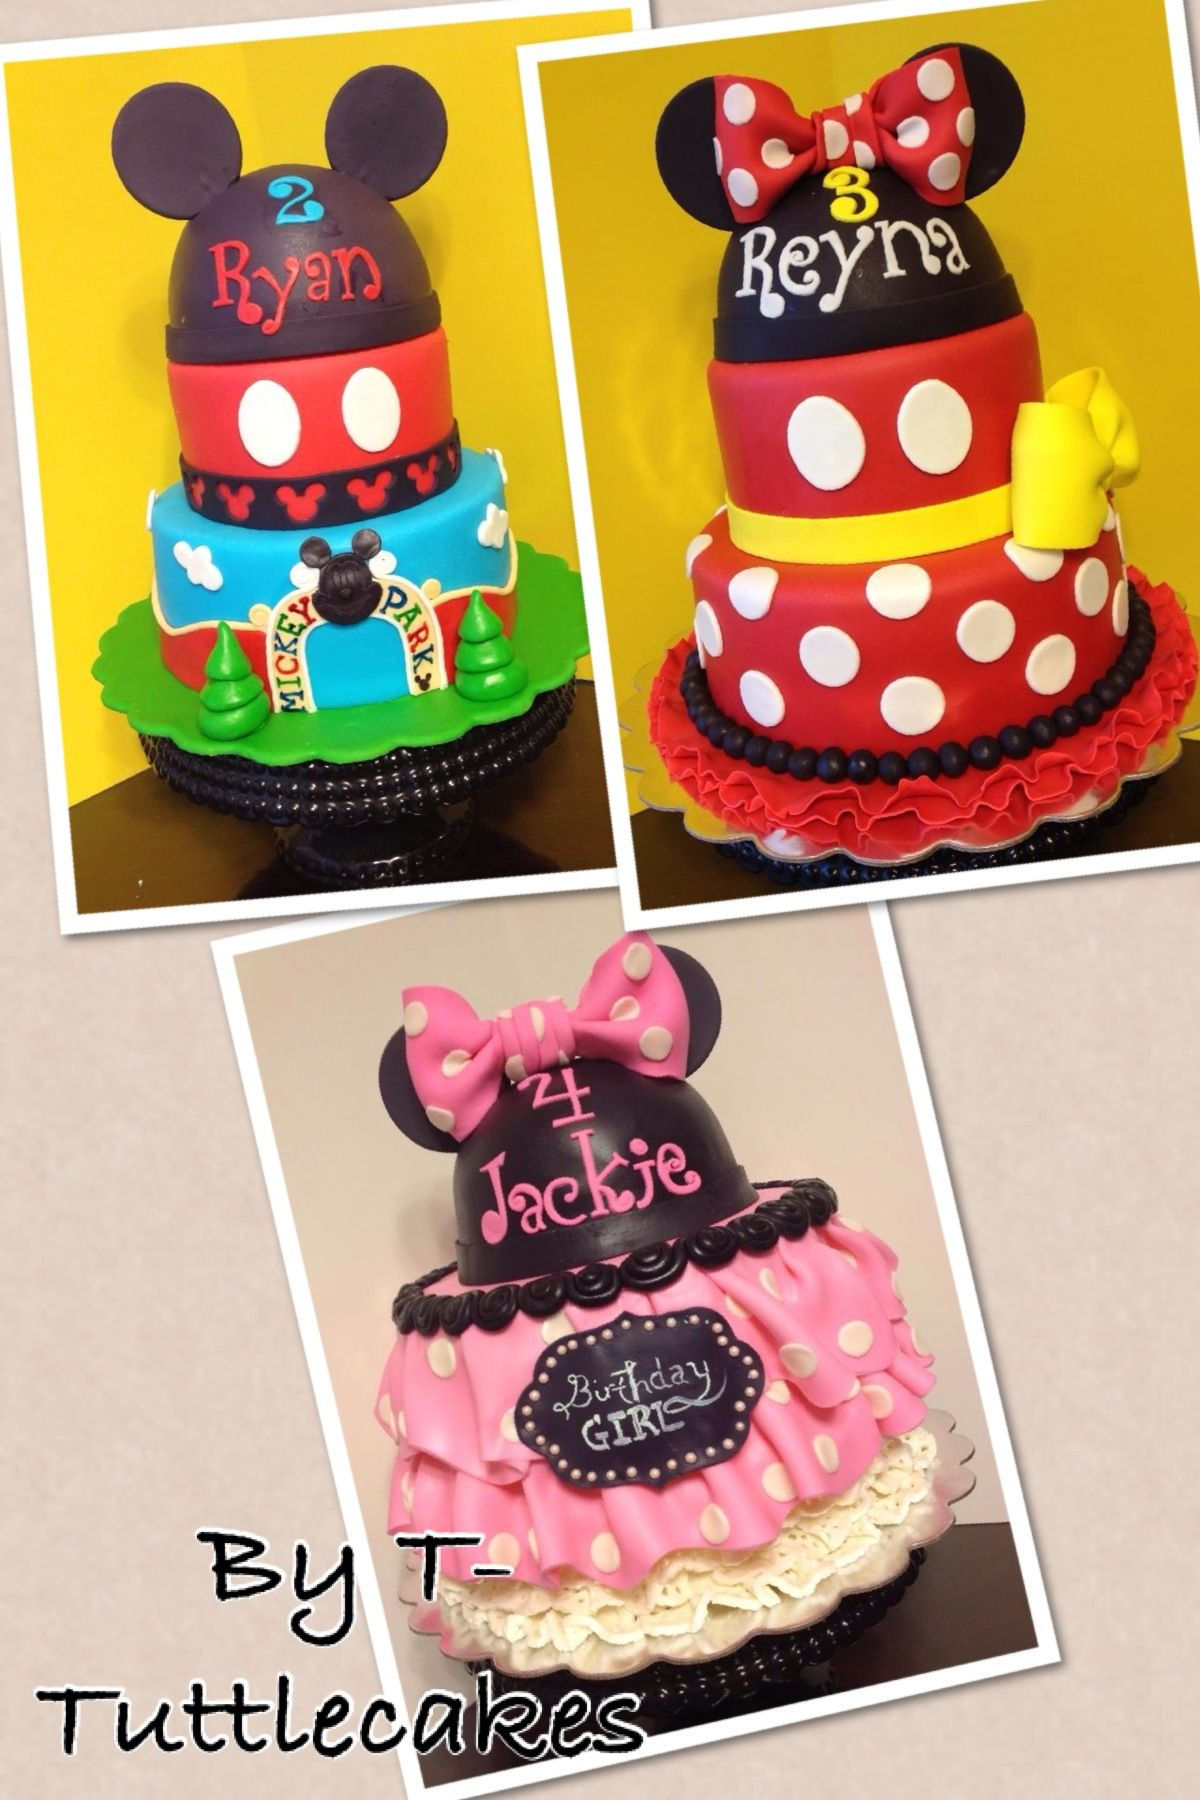 The Kids Birthday Cakes Made By T Tuttlecakes In Fayetteville Nc